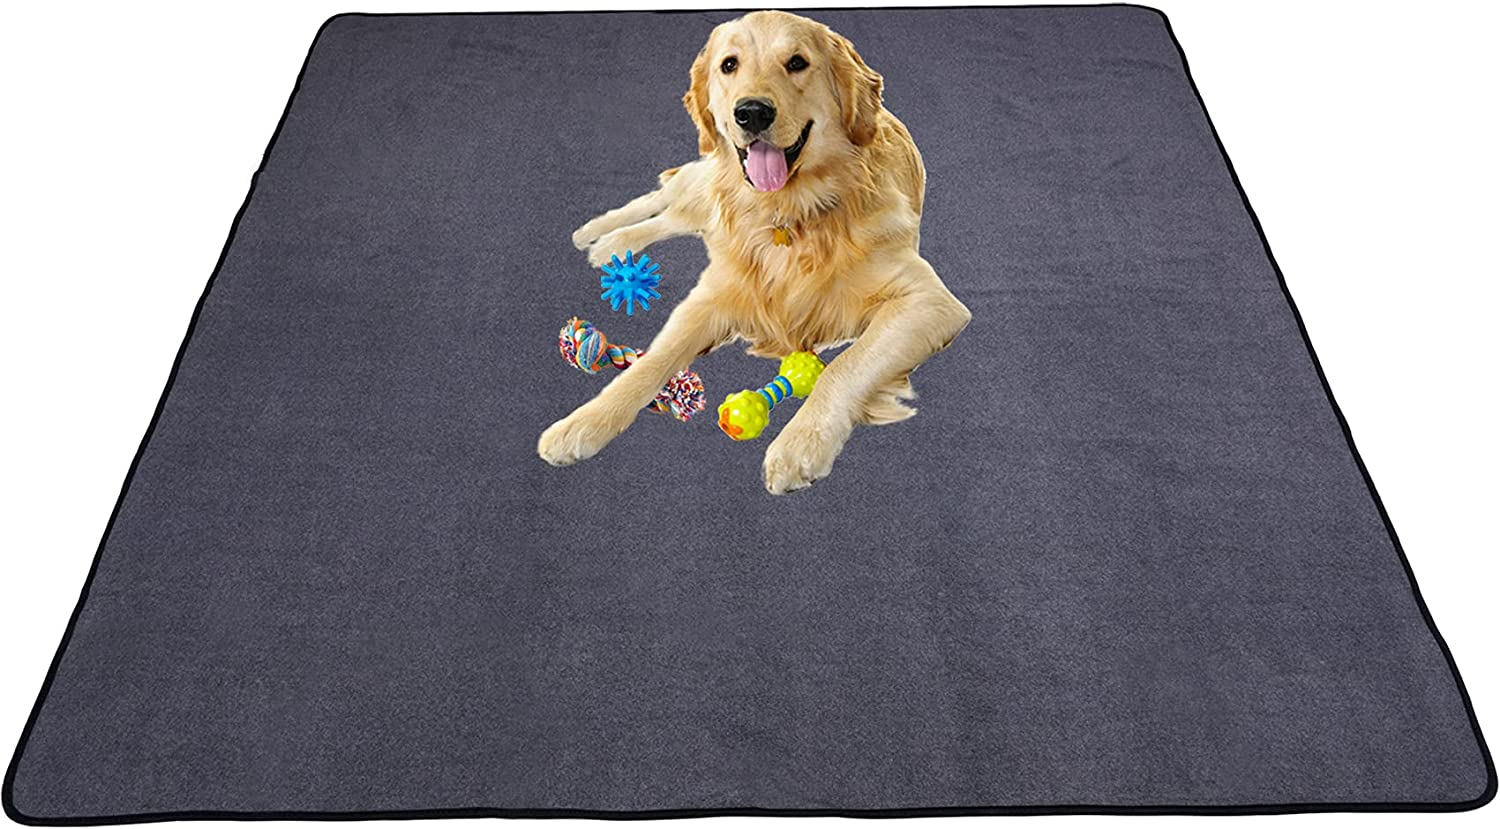 Yistao Washable Pee Pads for Dogs, Large 65